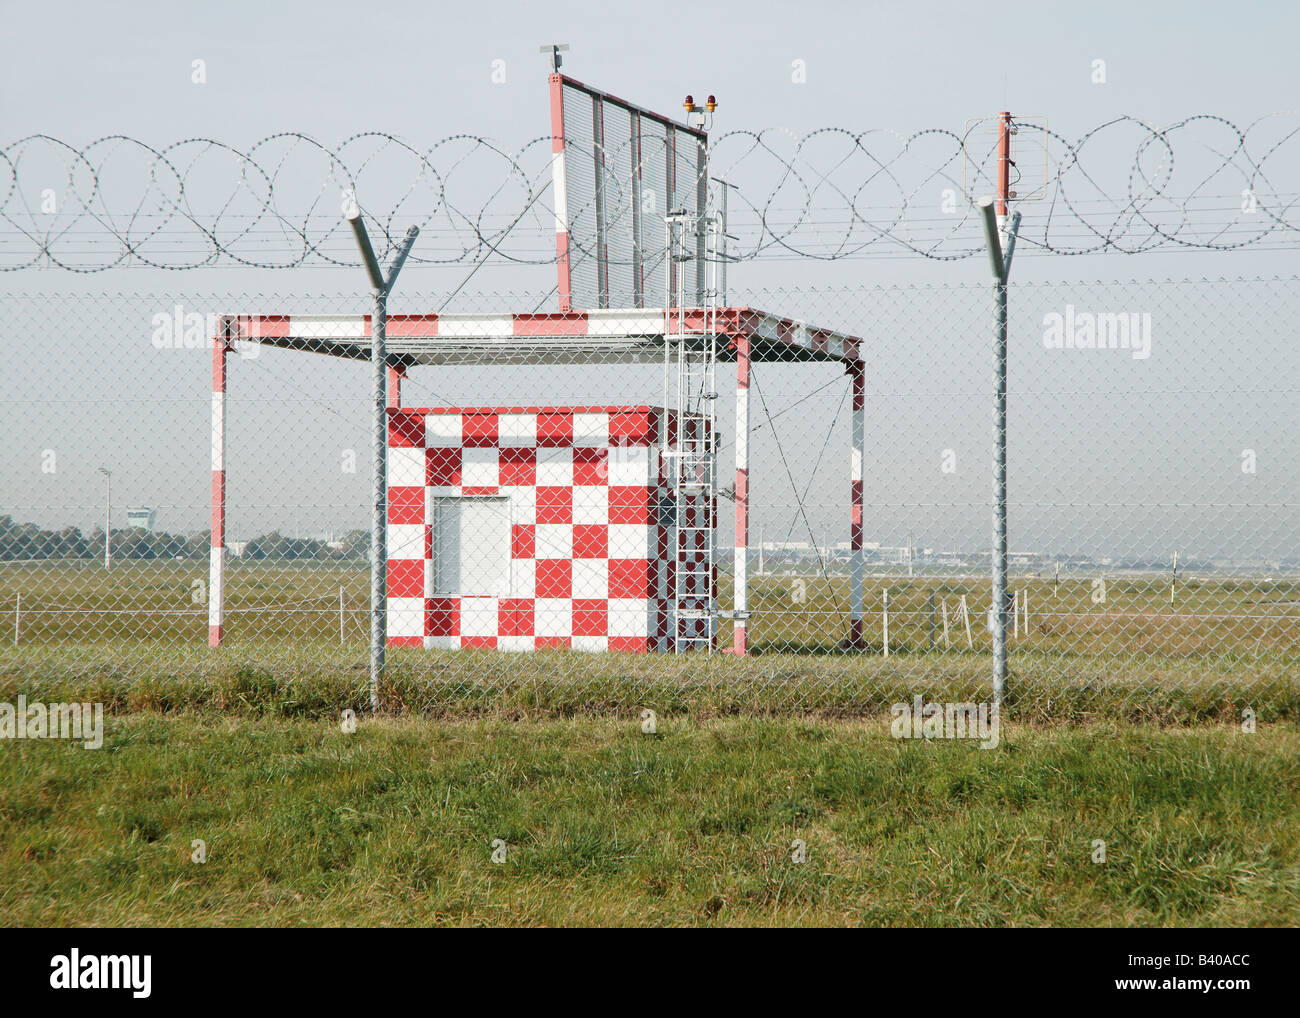 Weather station on airfield behind chain-link fence - Stock Image